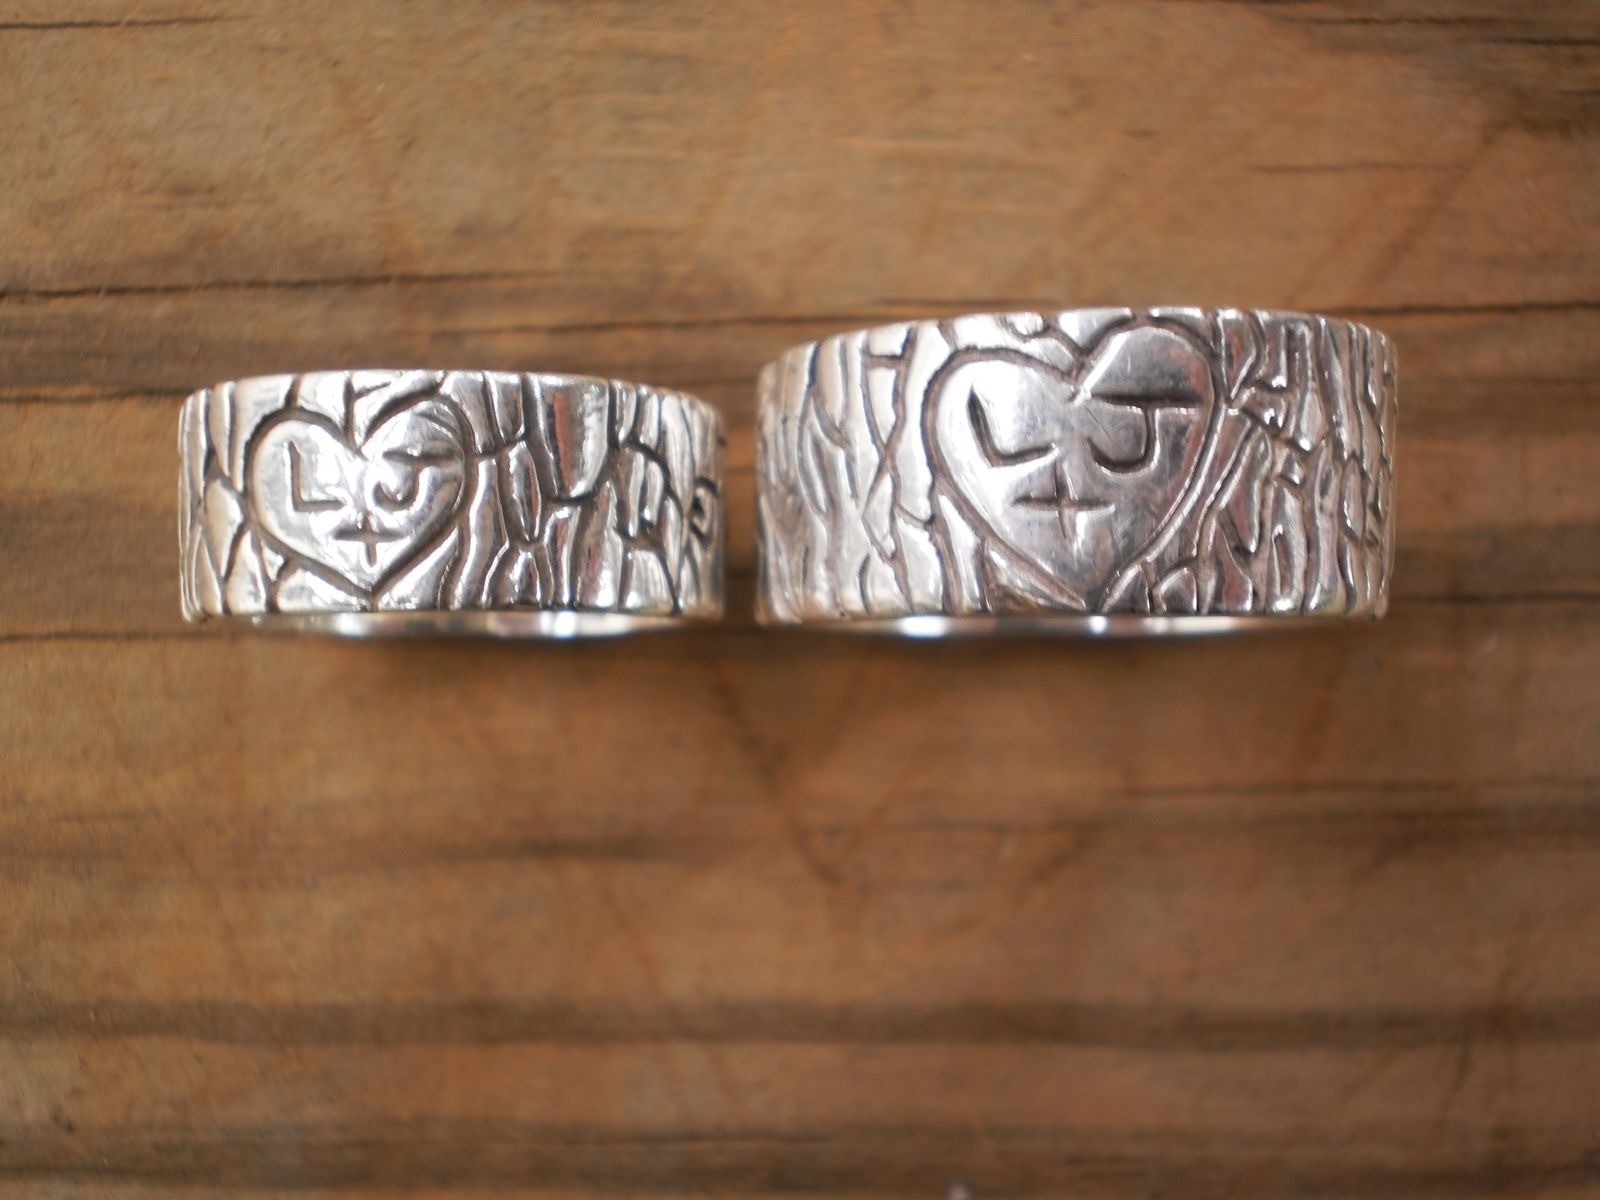 country rings country wedding bands Hand Made Initial Tree Stump Rustic Wedding Bands His And Hers by Owl Be Yours Forever